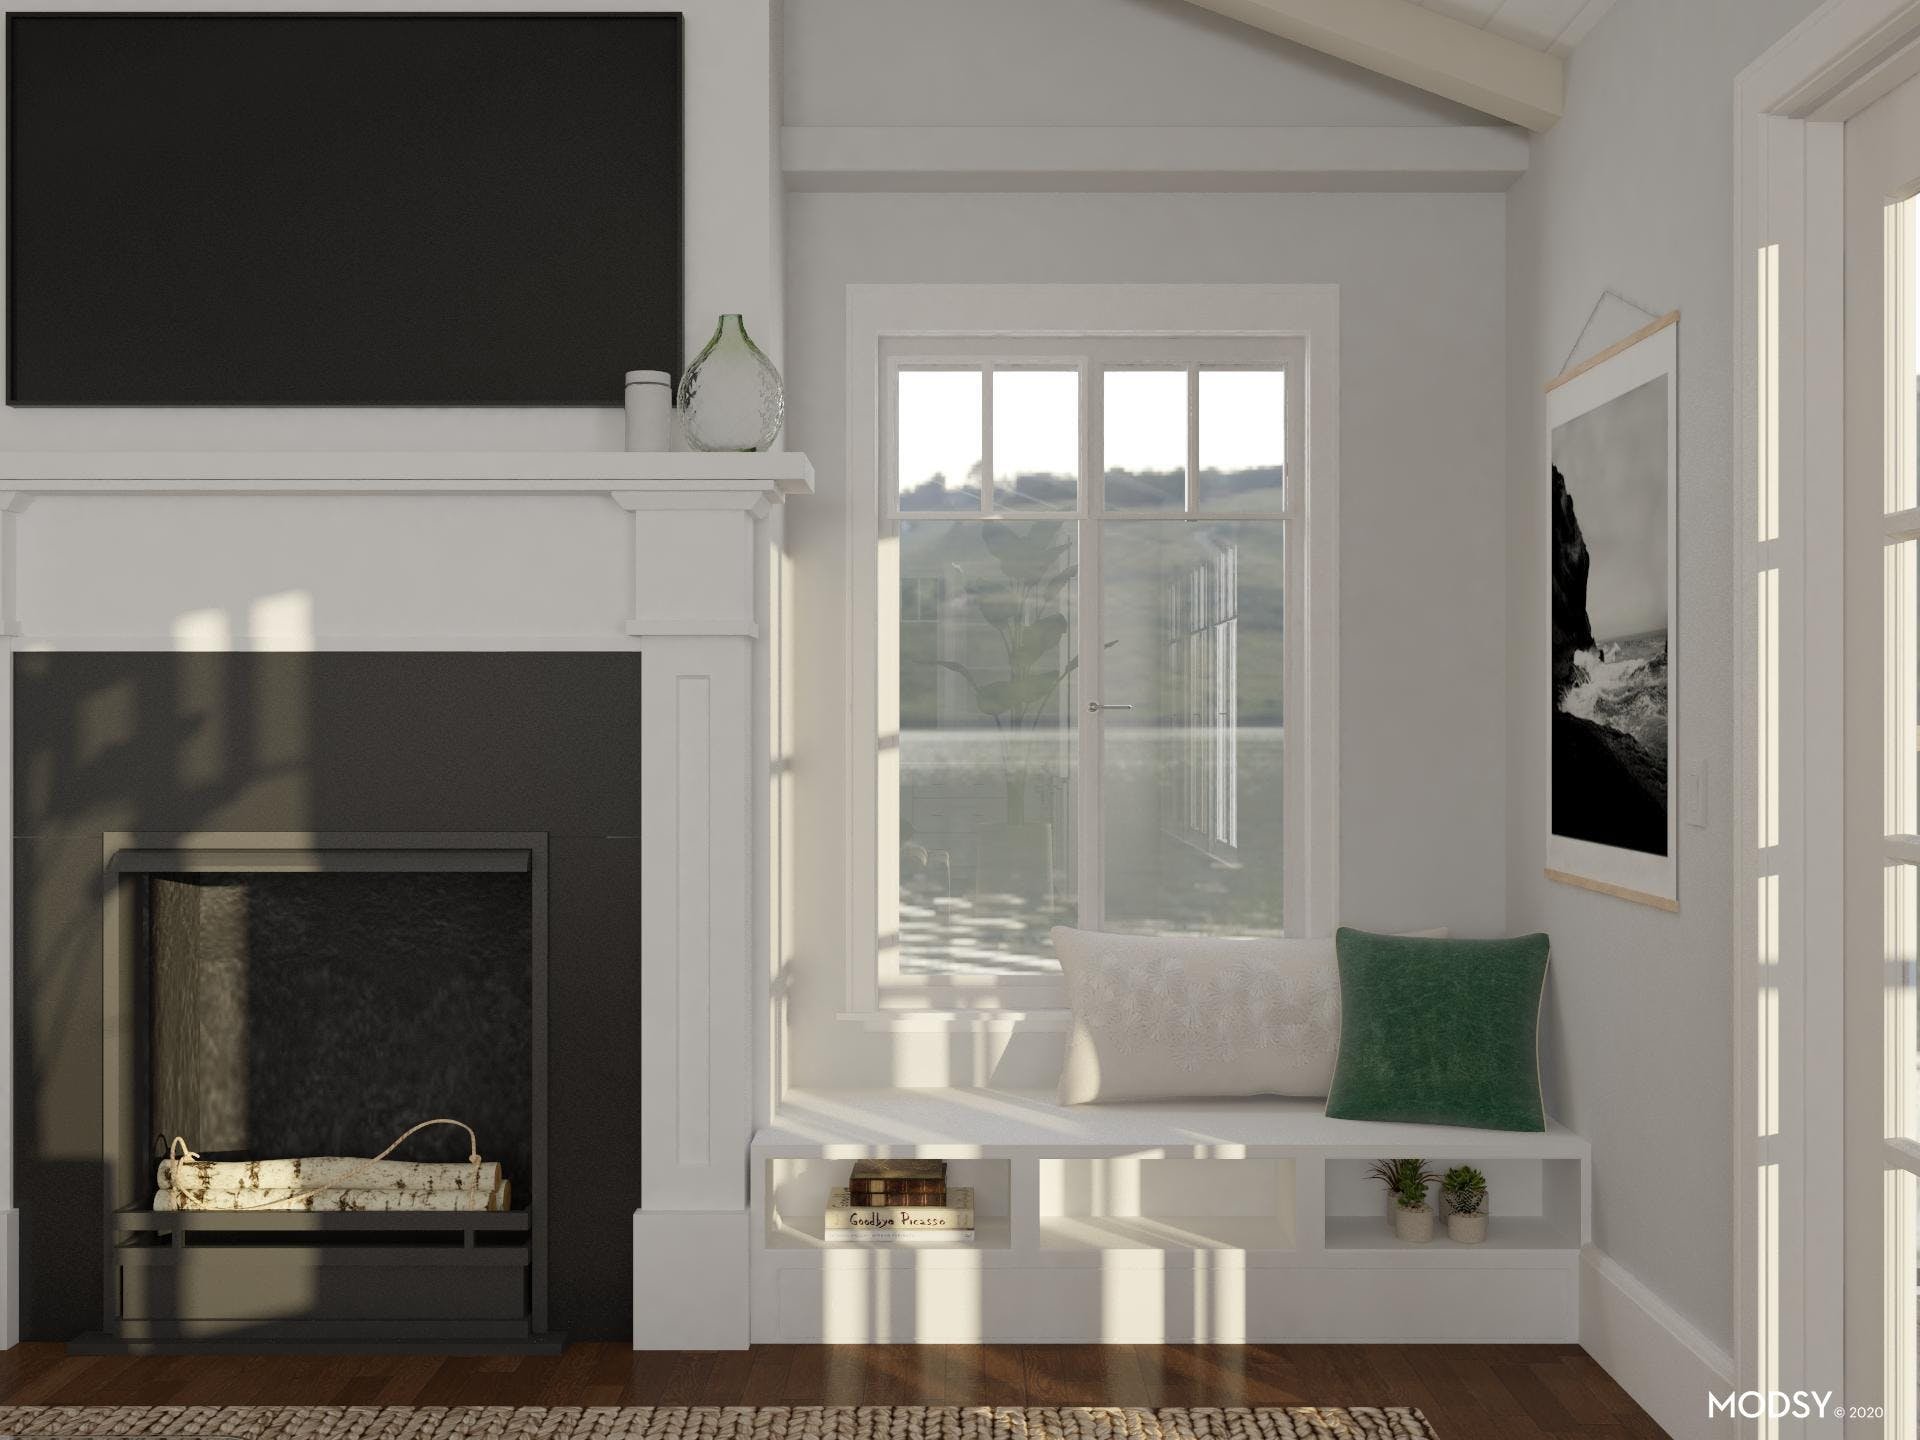 Built-ins and Storage Space